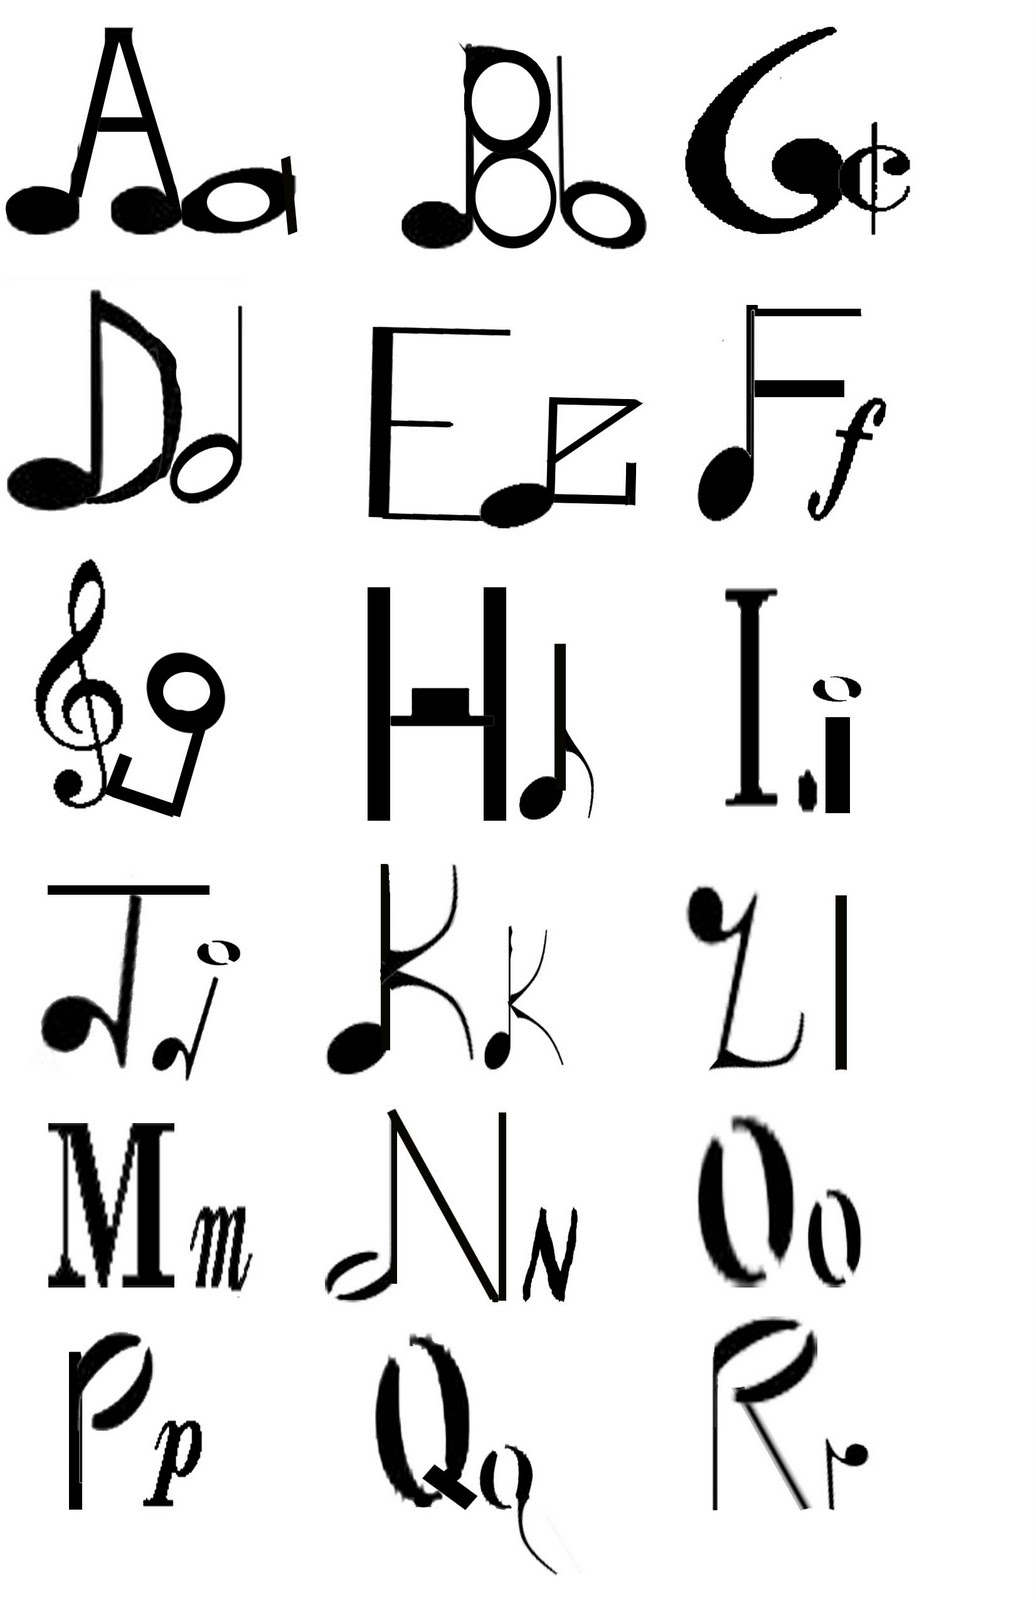 14 music the letter s font images music note letters font music symbols letters of alphabet biocorpaavc